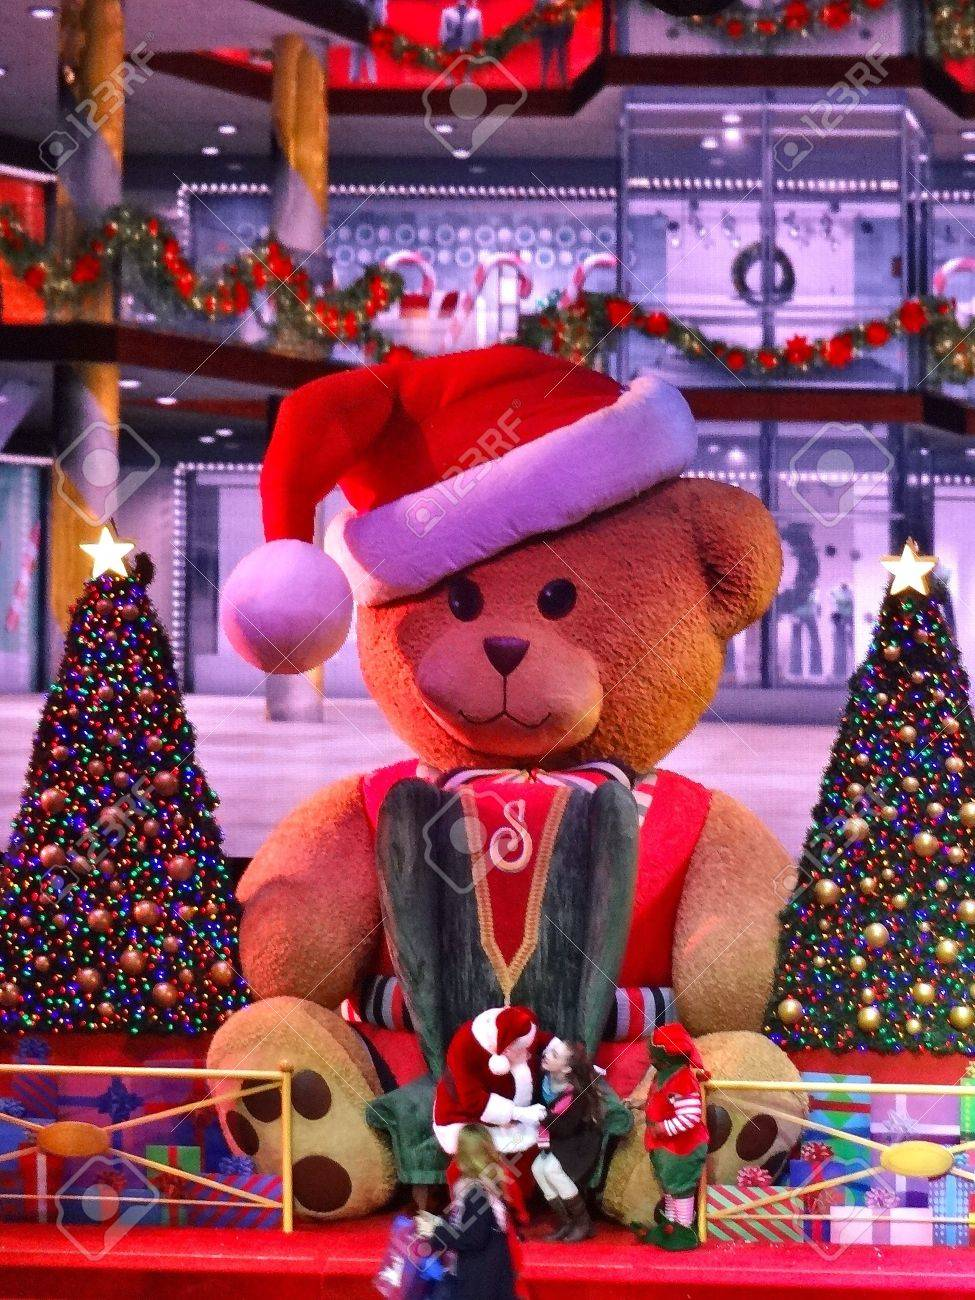 Giant Teddy Bear Is Part Of The Christmas Story For The Radio ...